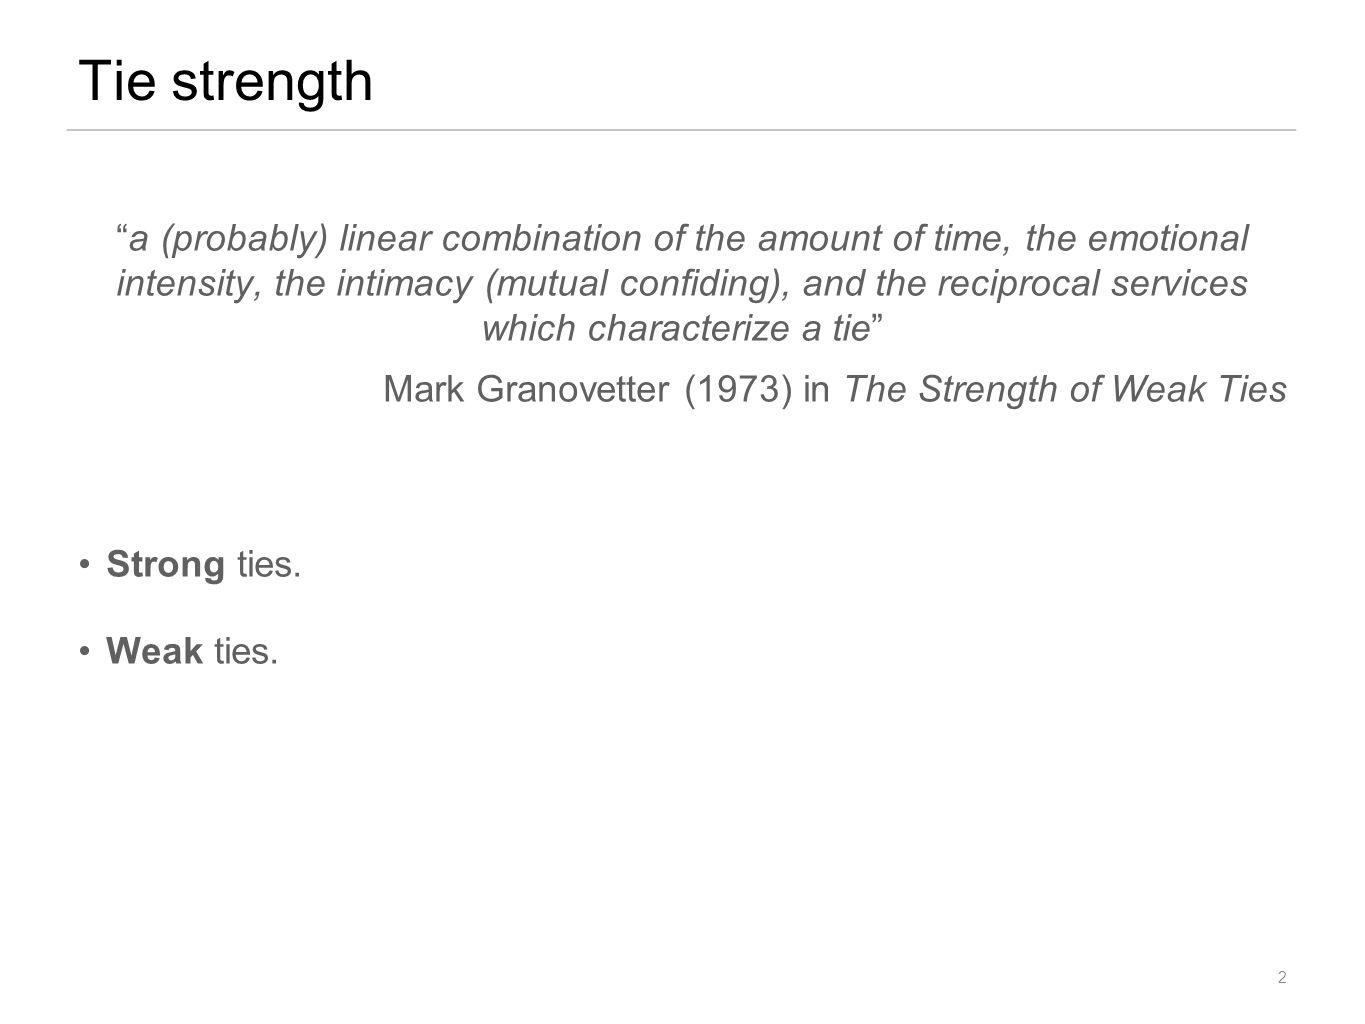 a (probably) linear combination of the amount of time, the emotional intensity, the intimacy (mutual confiding), and the reciprocal services which characterize a tie Mark Granovetter (1973) in The Strength of Weak Ties Strong ties.